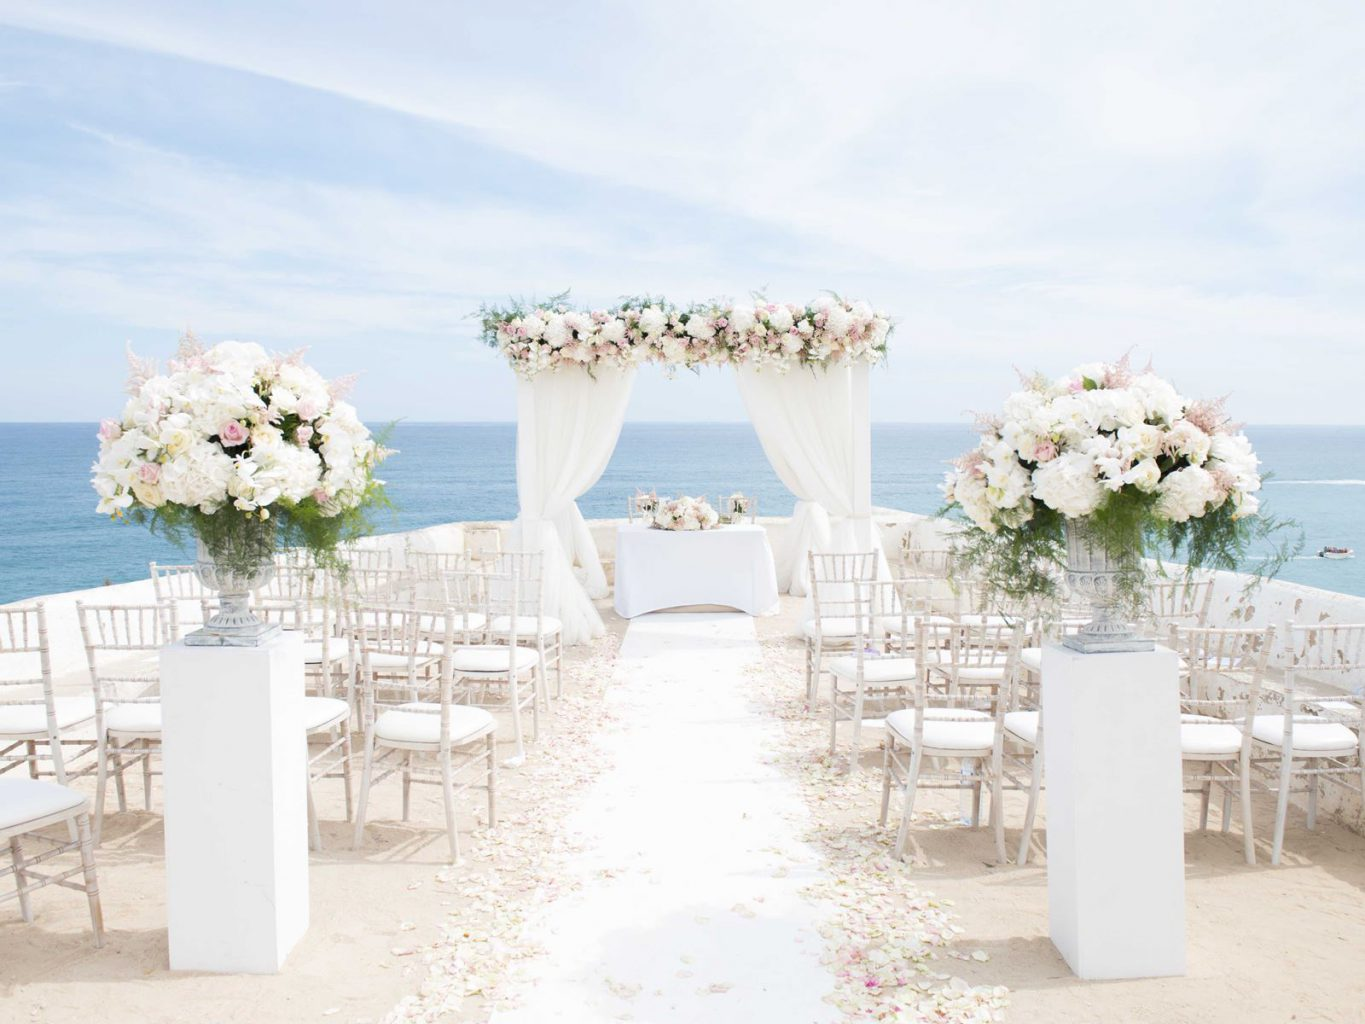 Algarve Weddings Venue Slider image Weddings by Rebecca Woodhall Wedding Planner Algarve Portugal